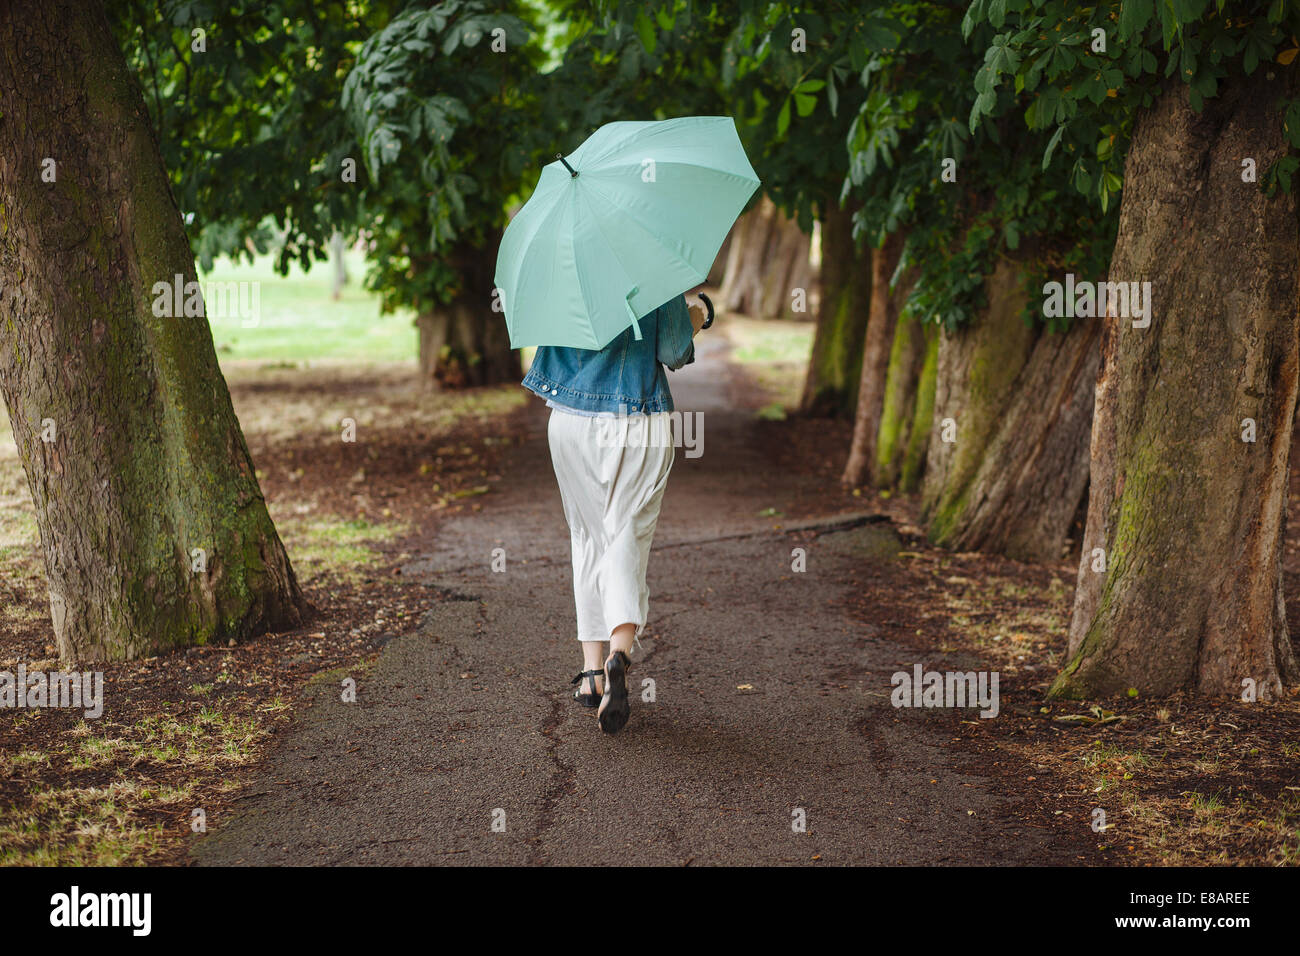 Rear view of young woman with umbrella strolling in park - Stock Image